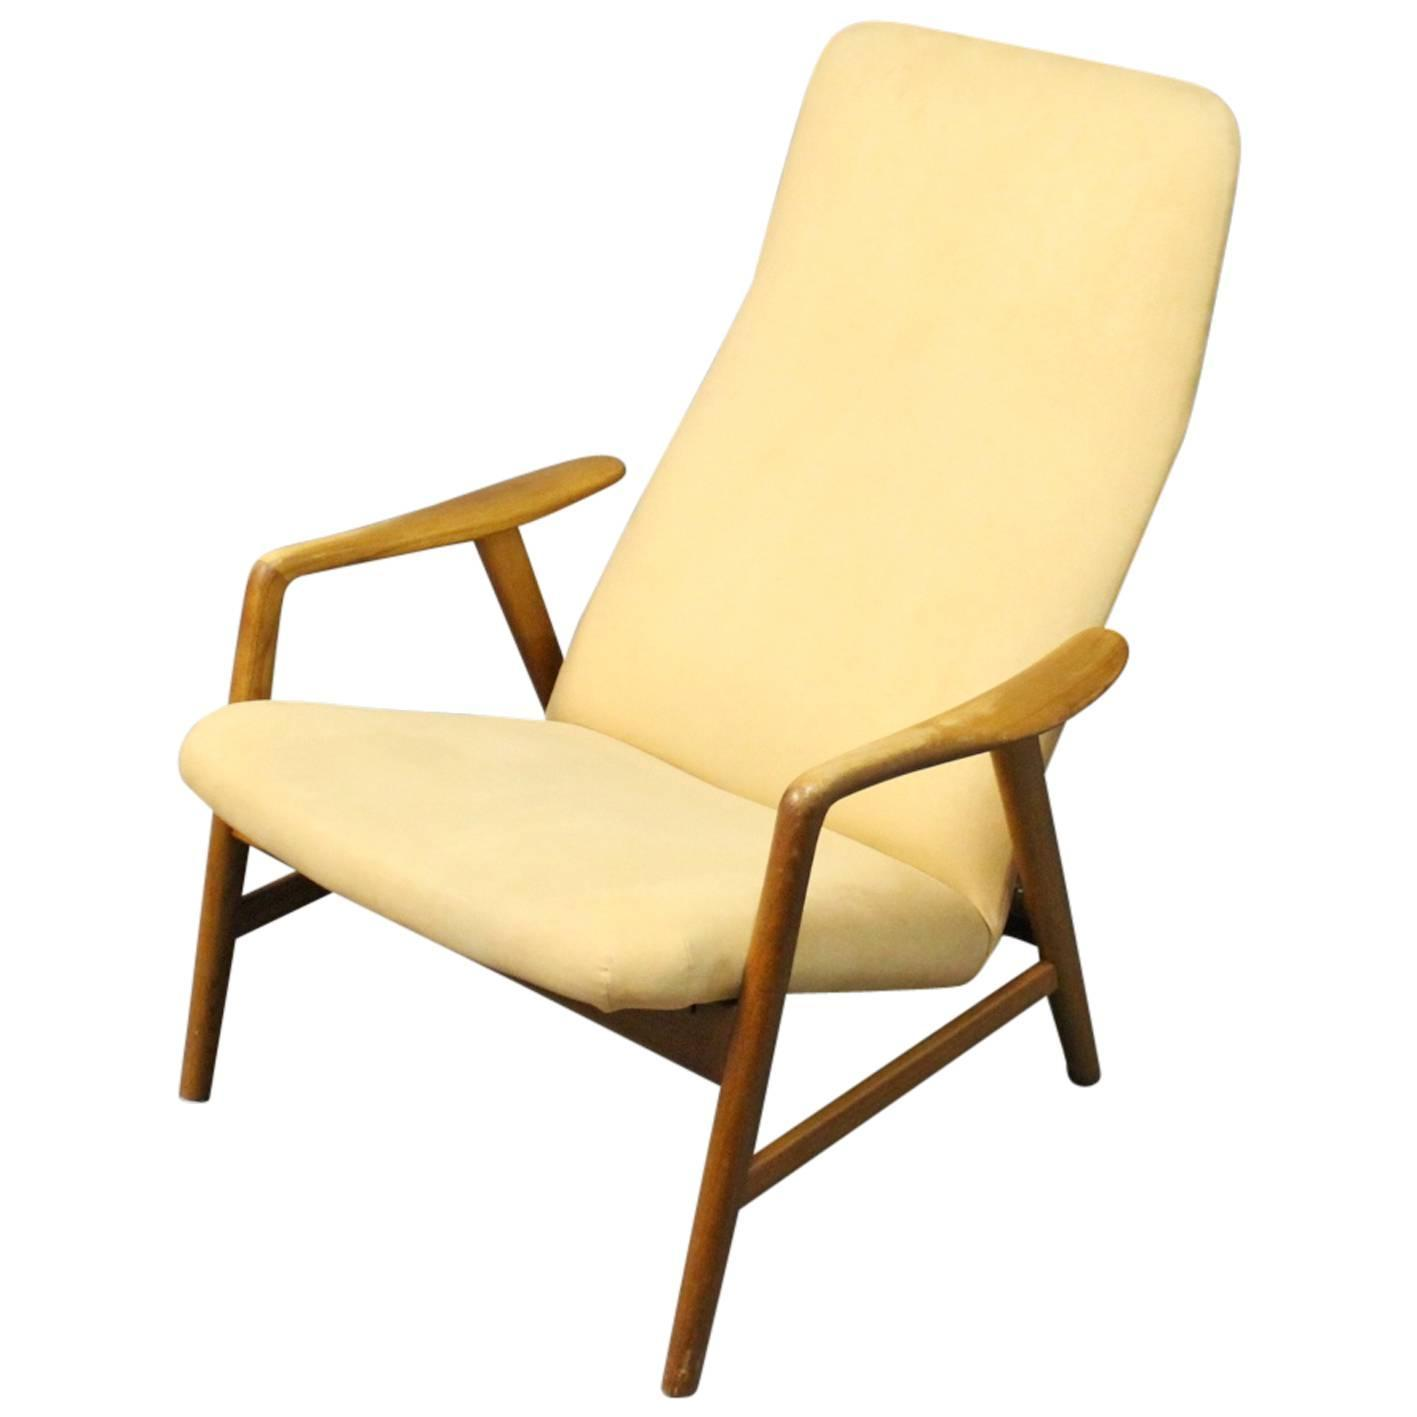 Alf Svensson Highback Reclining Lounge Chair Manufactured by Fritz